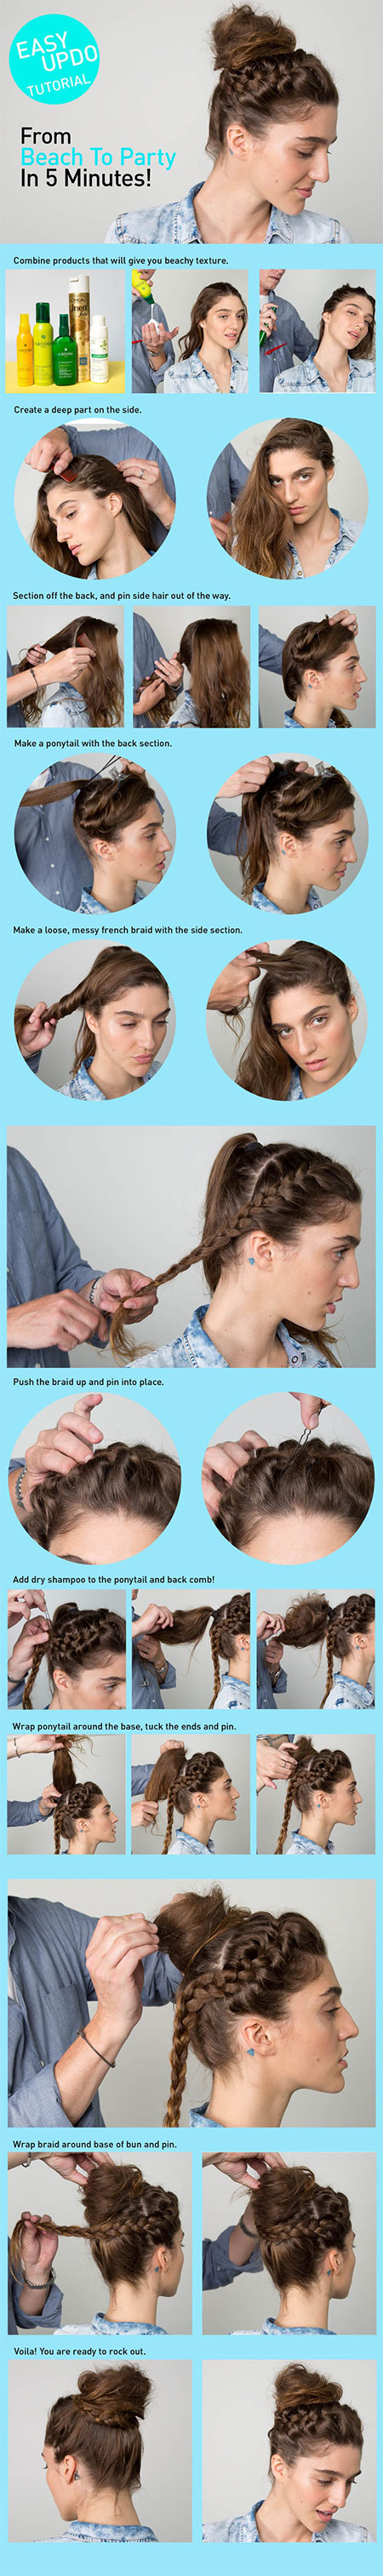 25-Fun-Quick-Spring-Summer-Hairstyle-Tutorials-2014-For-Girls-Women-20